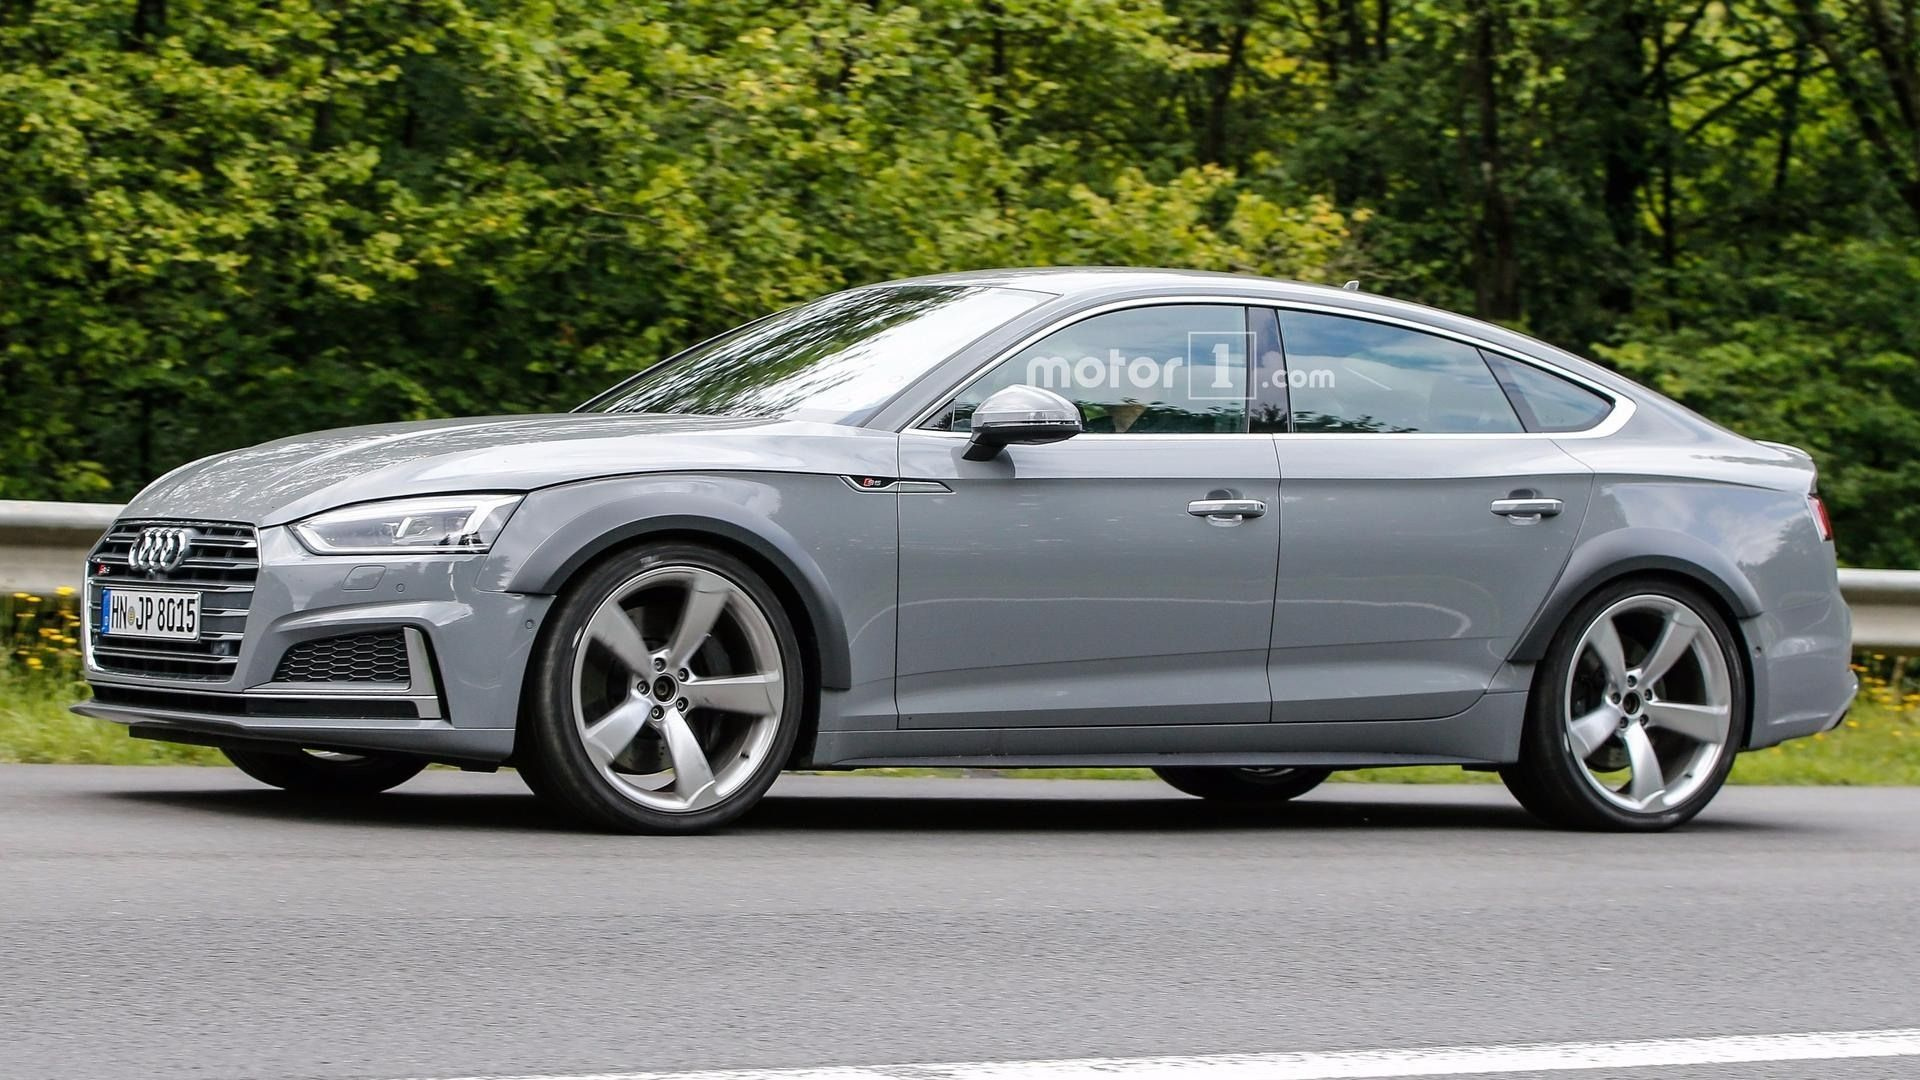 2019 Audi A5 Sportback Redesign Price And Review Audi S5 Audi Rs5 Sportback Audi A5